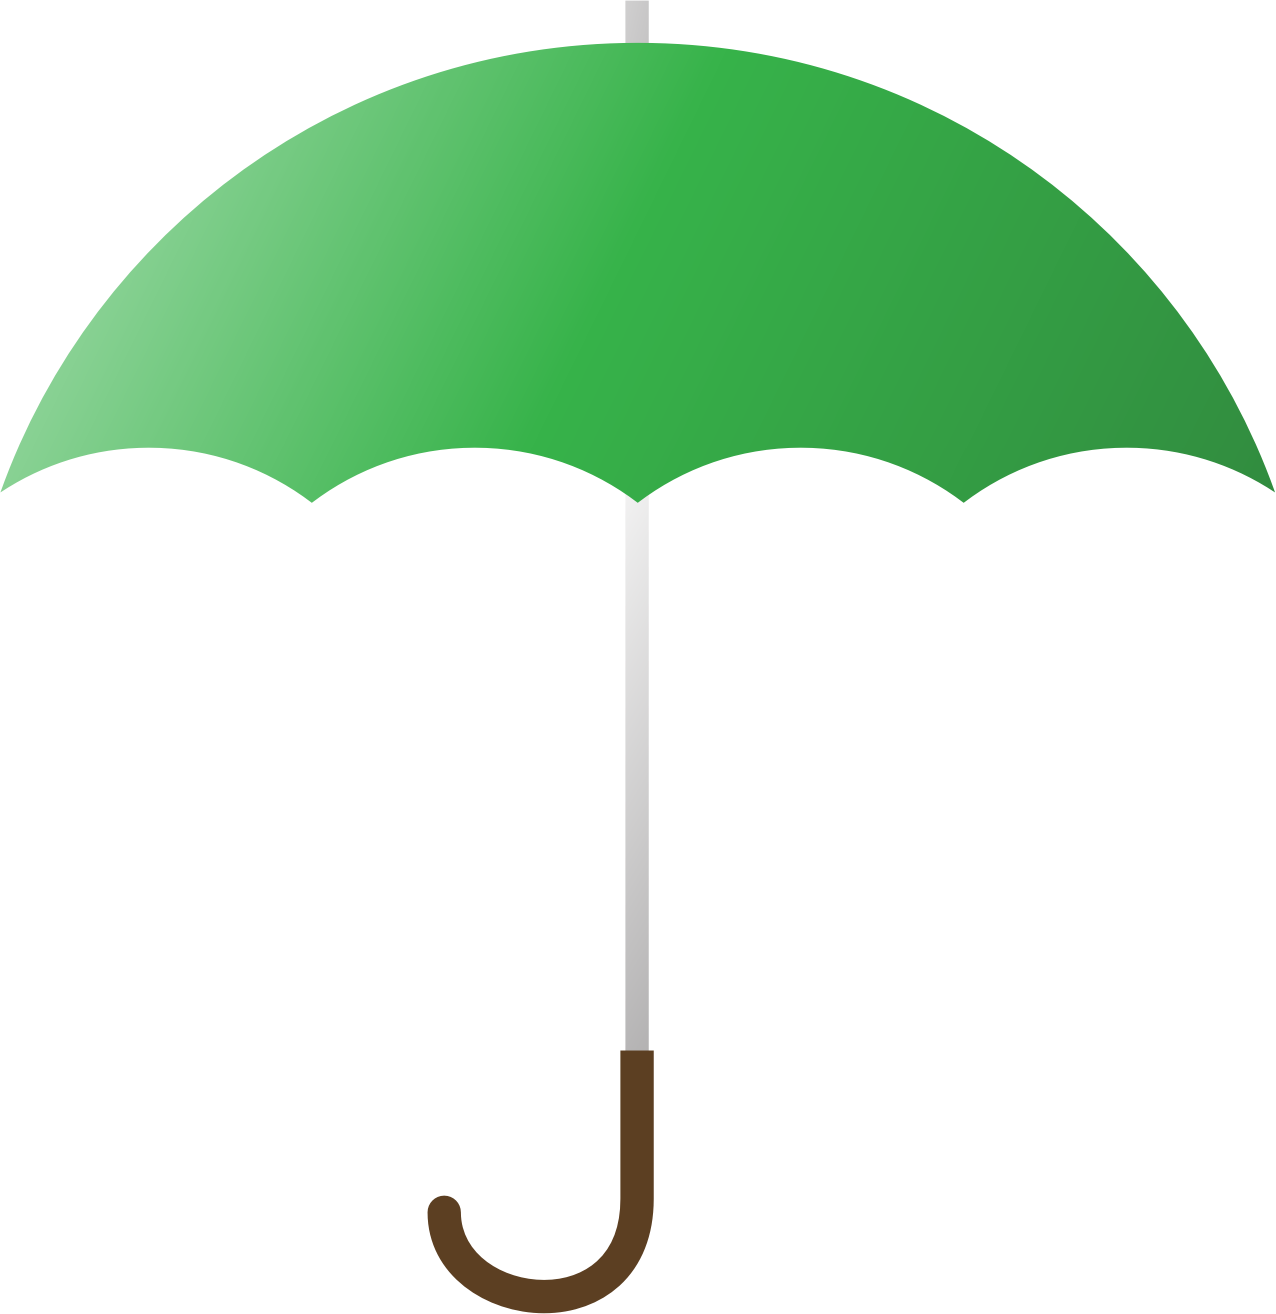 Green Umbrella by jgm104